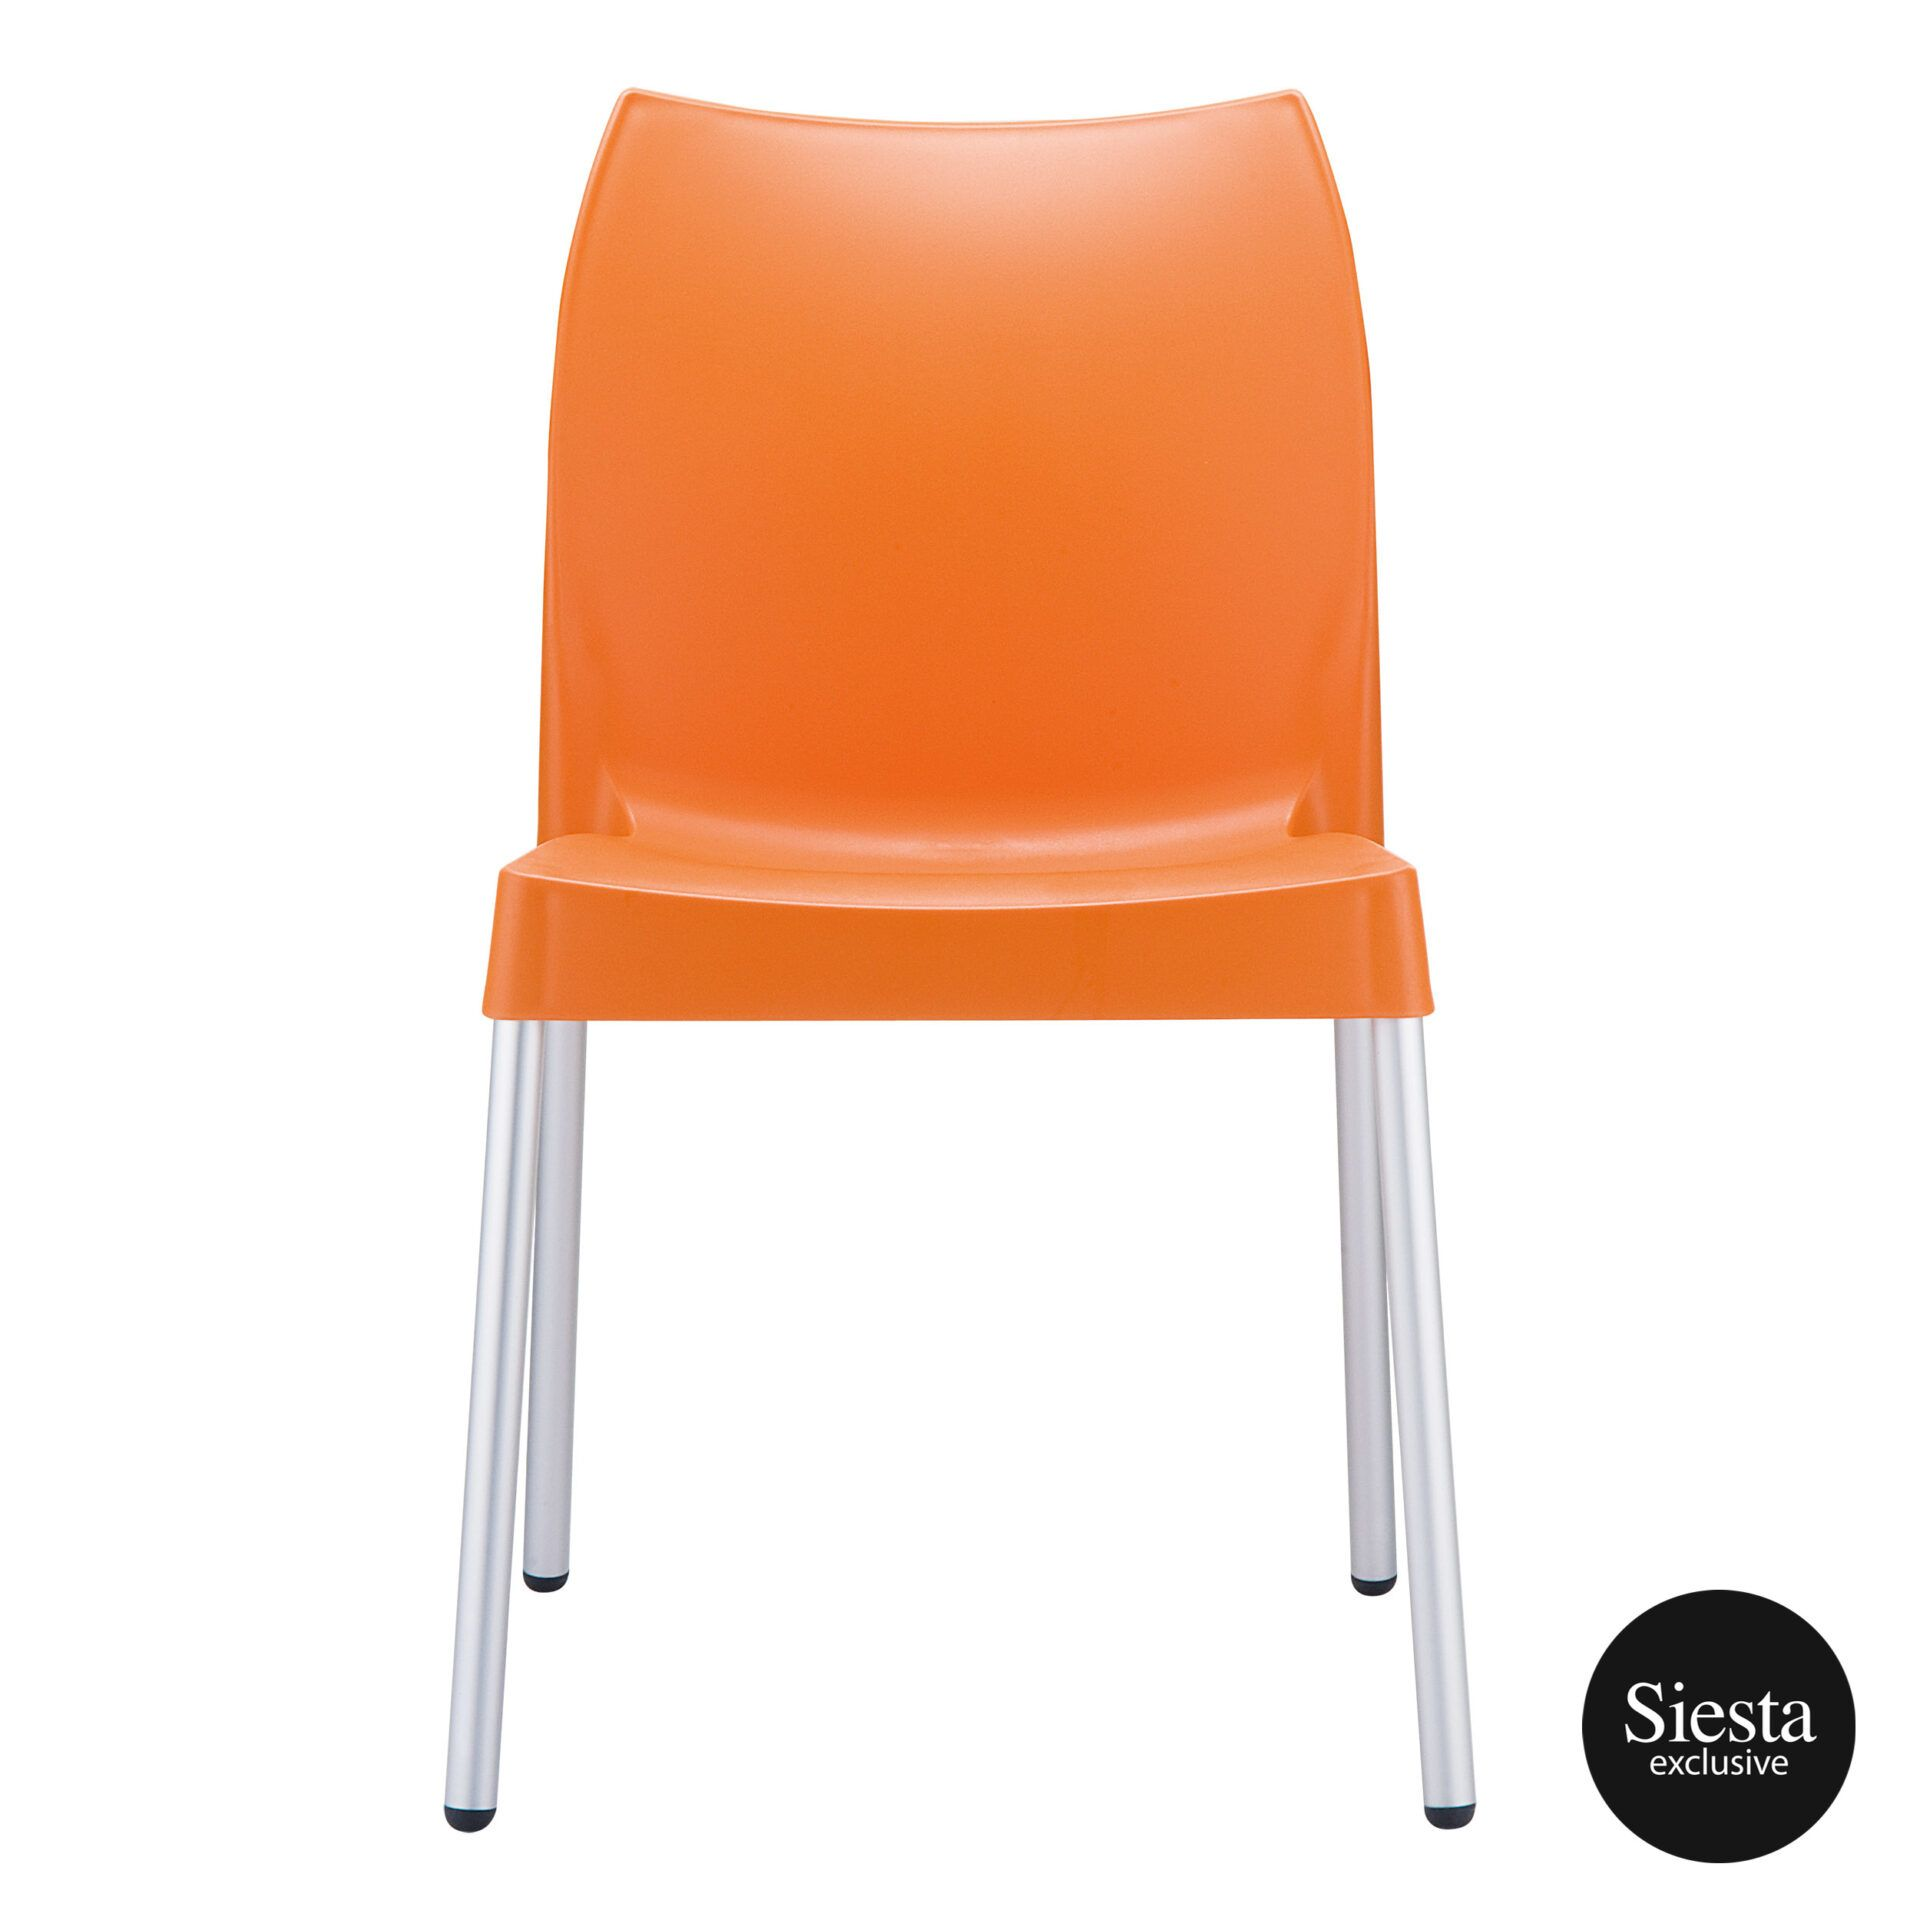 commercial outdoor hospitality seating vita chair orange front 1